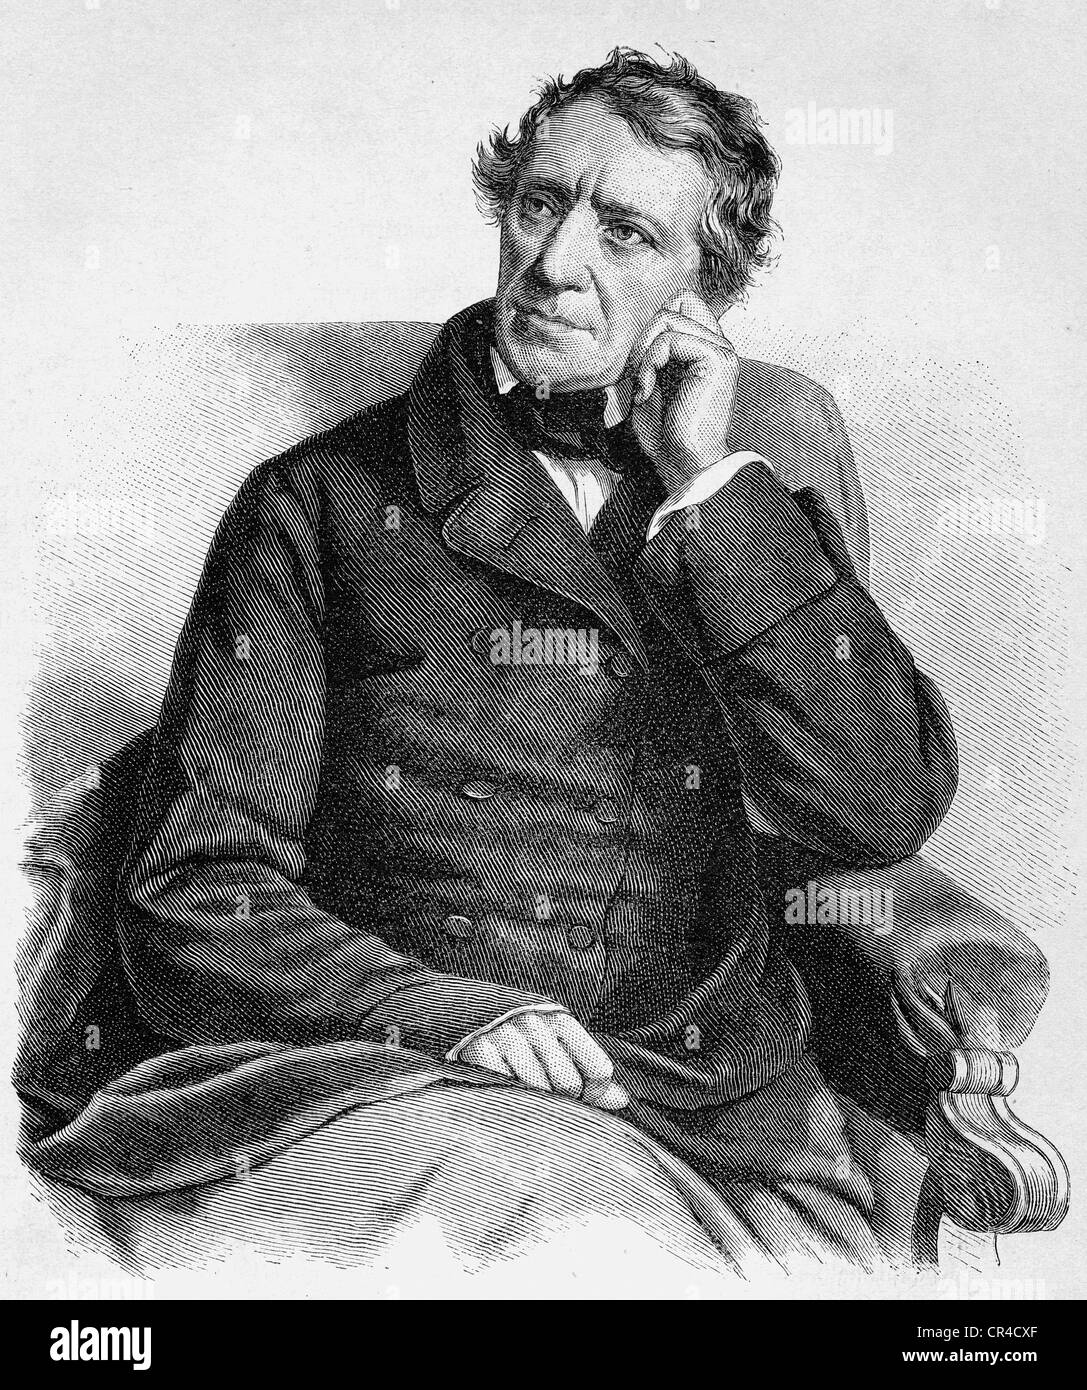 Franz Grillparzer (1791 - 1872), writer, steel engraving, 1858 - Stock Image